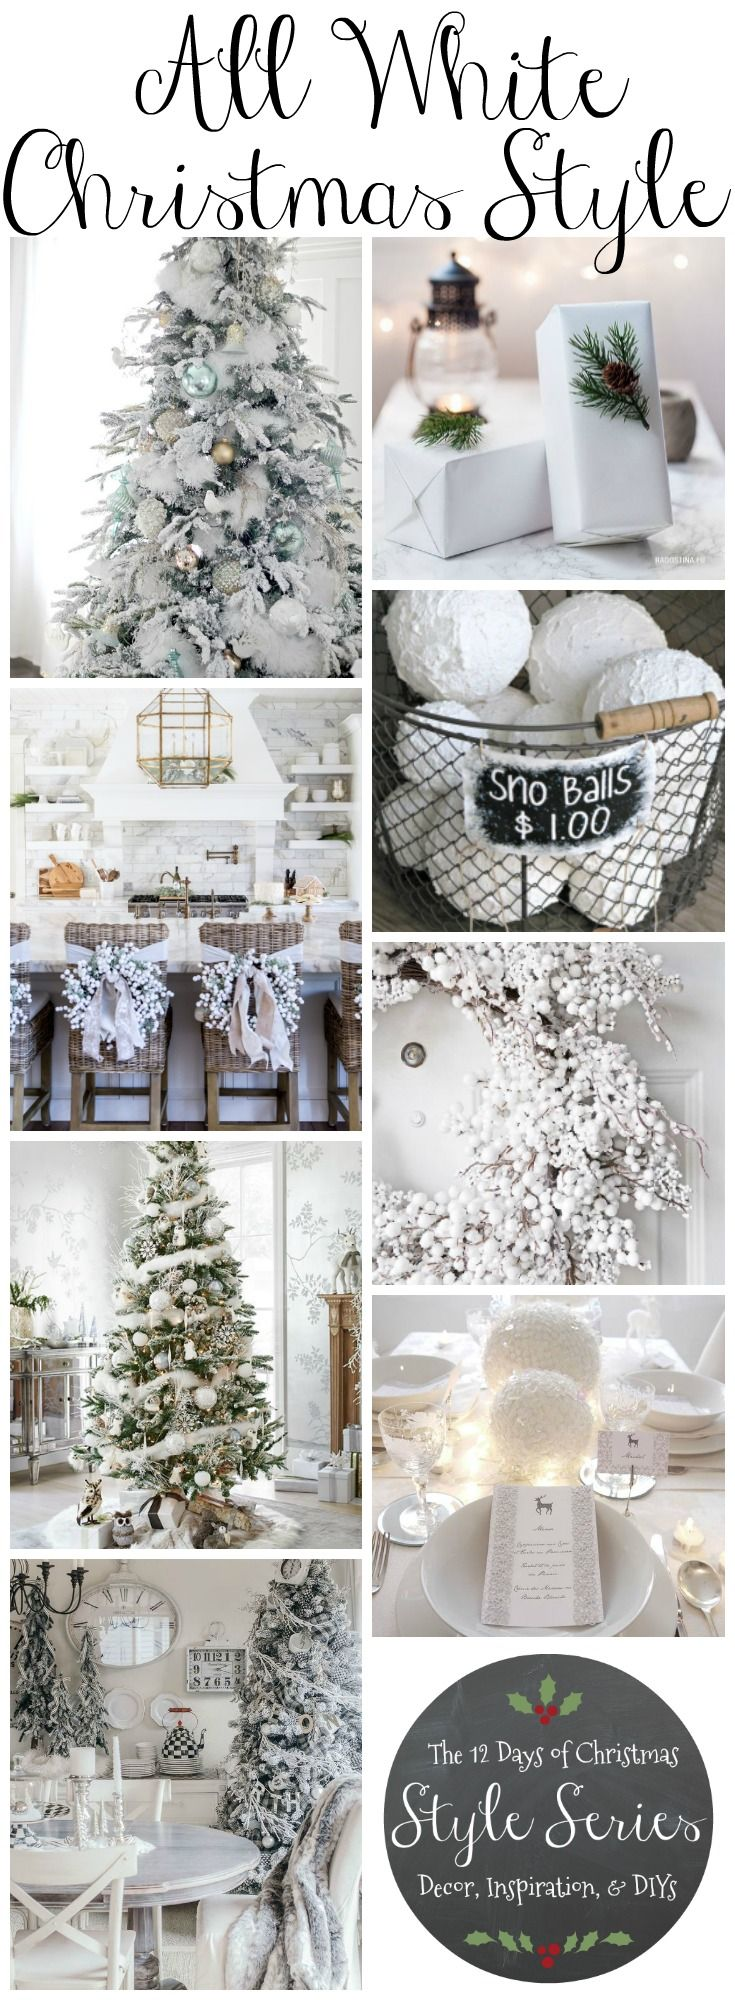 all white christmas style series - Winter Wonderland Christmas Decorating Ideas